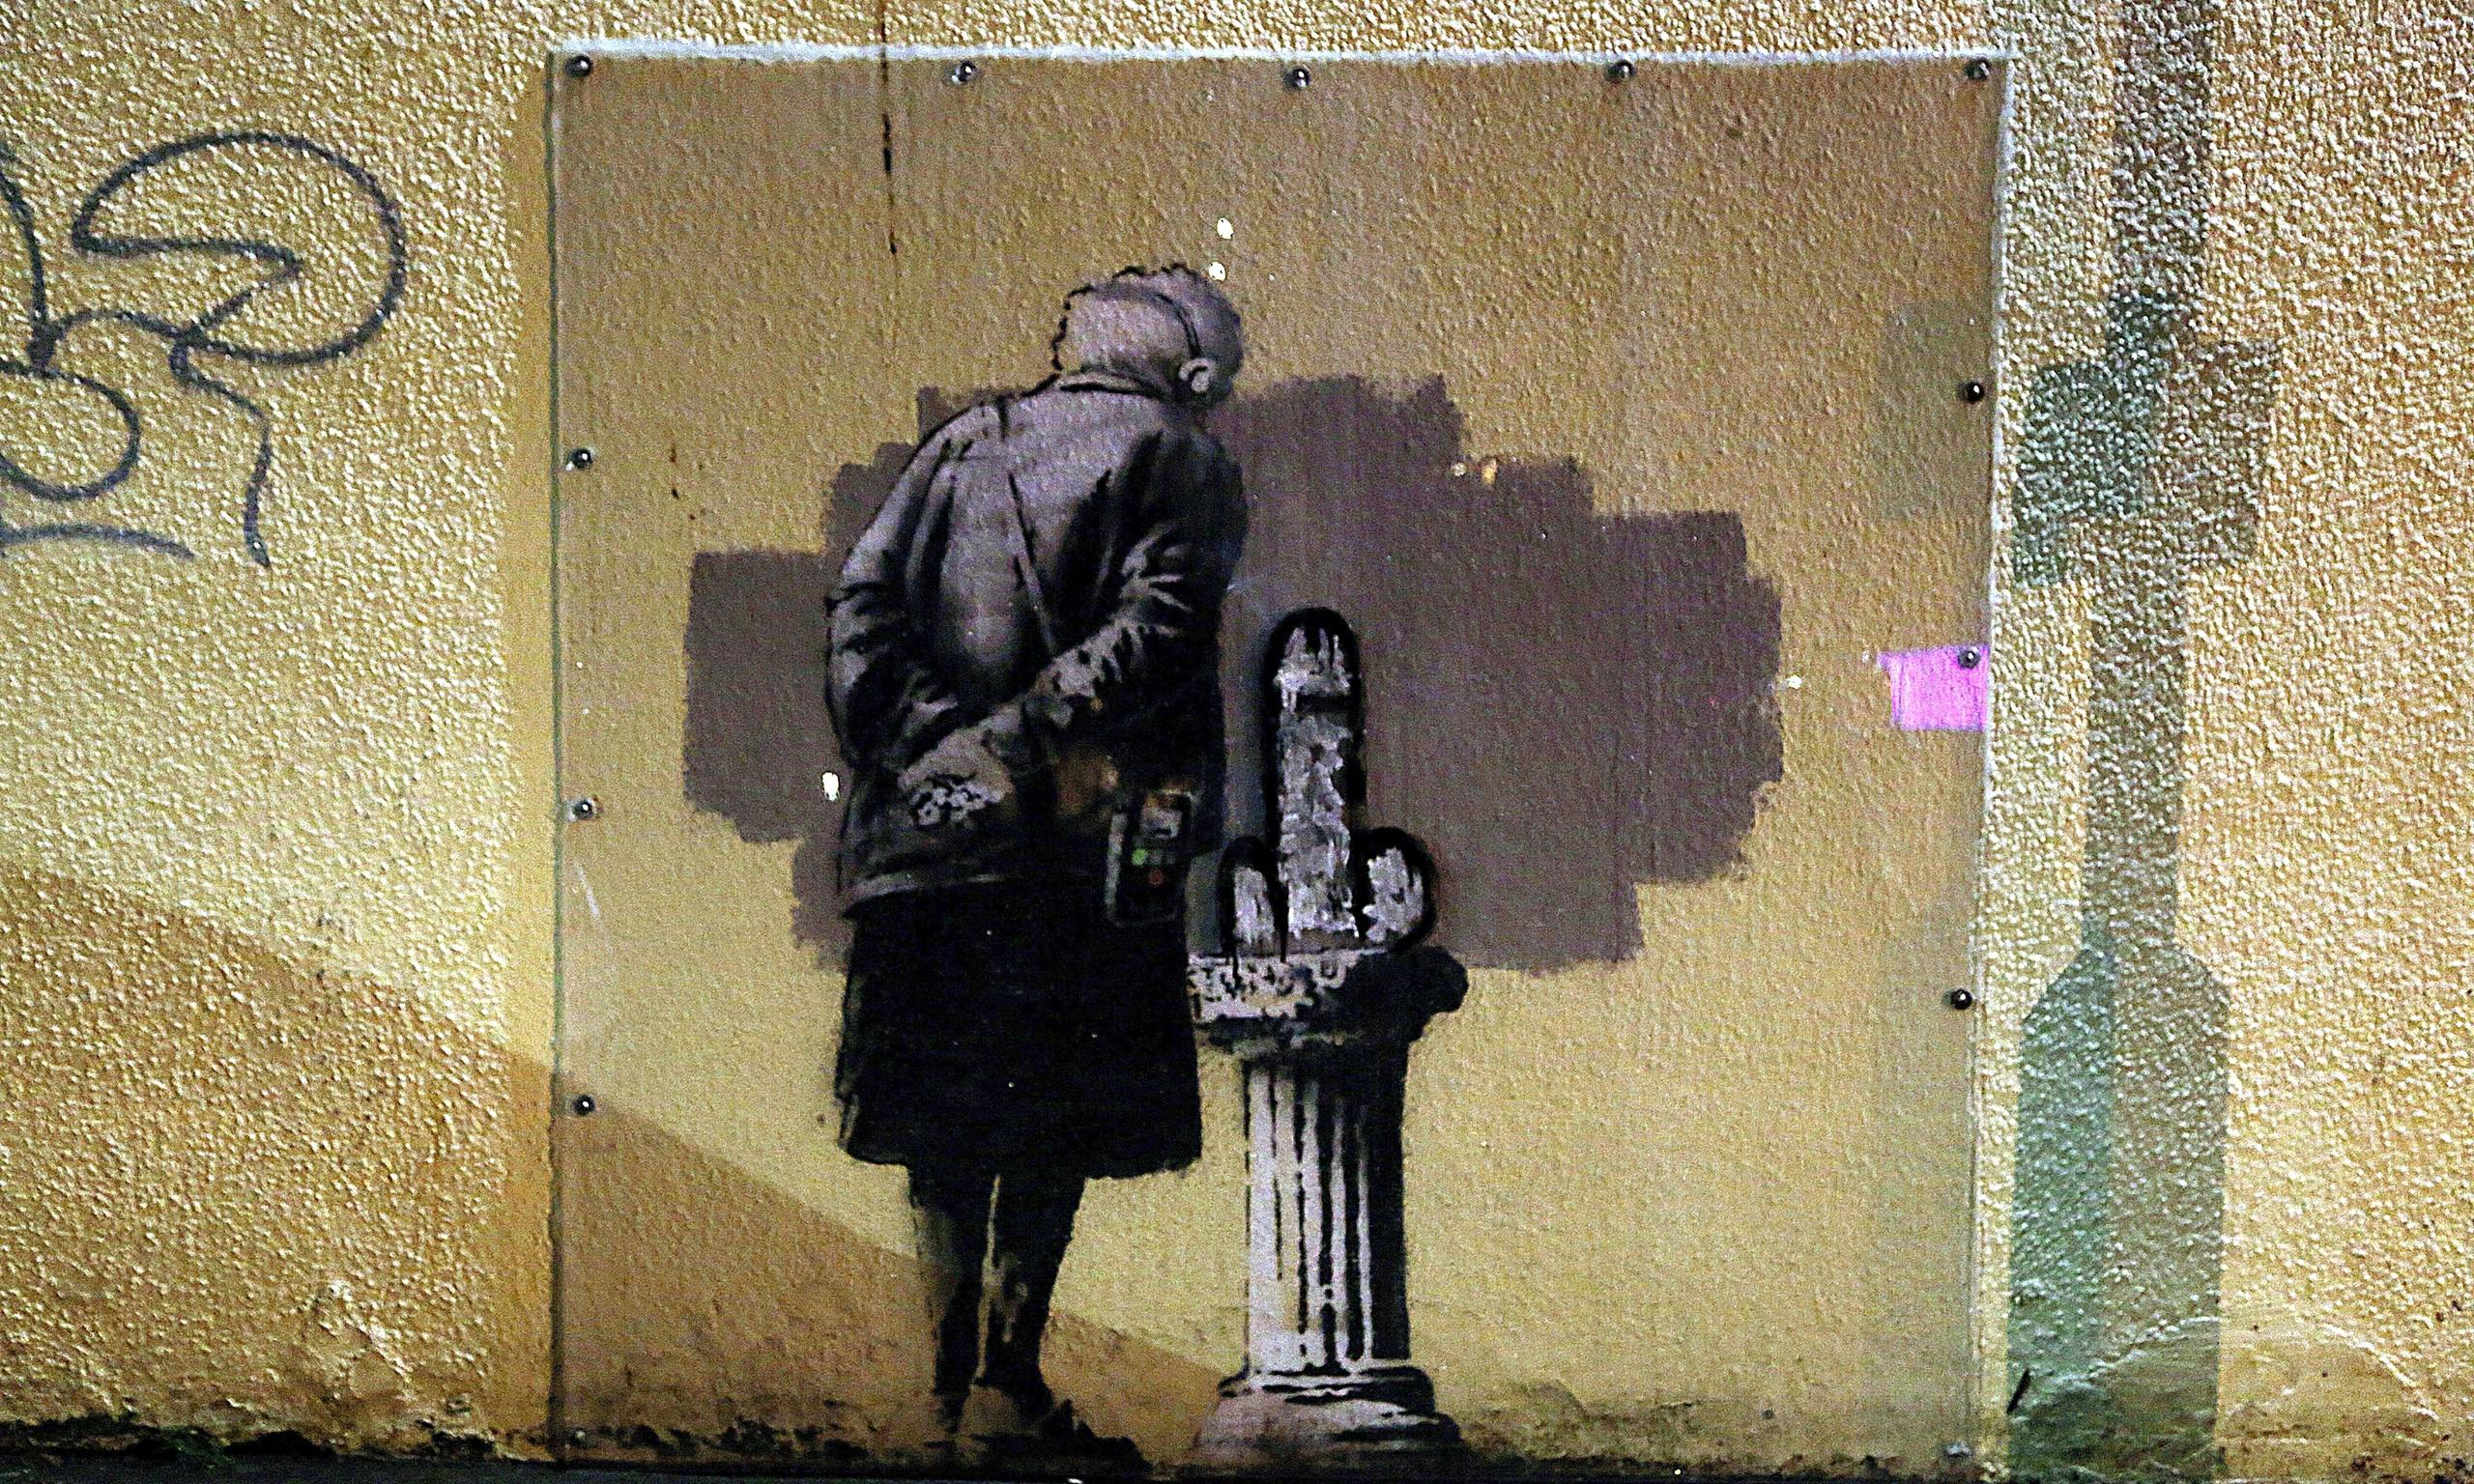 Banksy mural art buff vandalised art and design the for Call for mural artists 2014